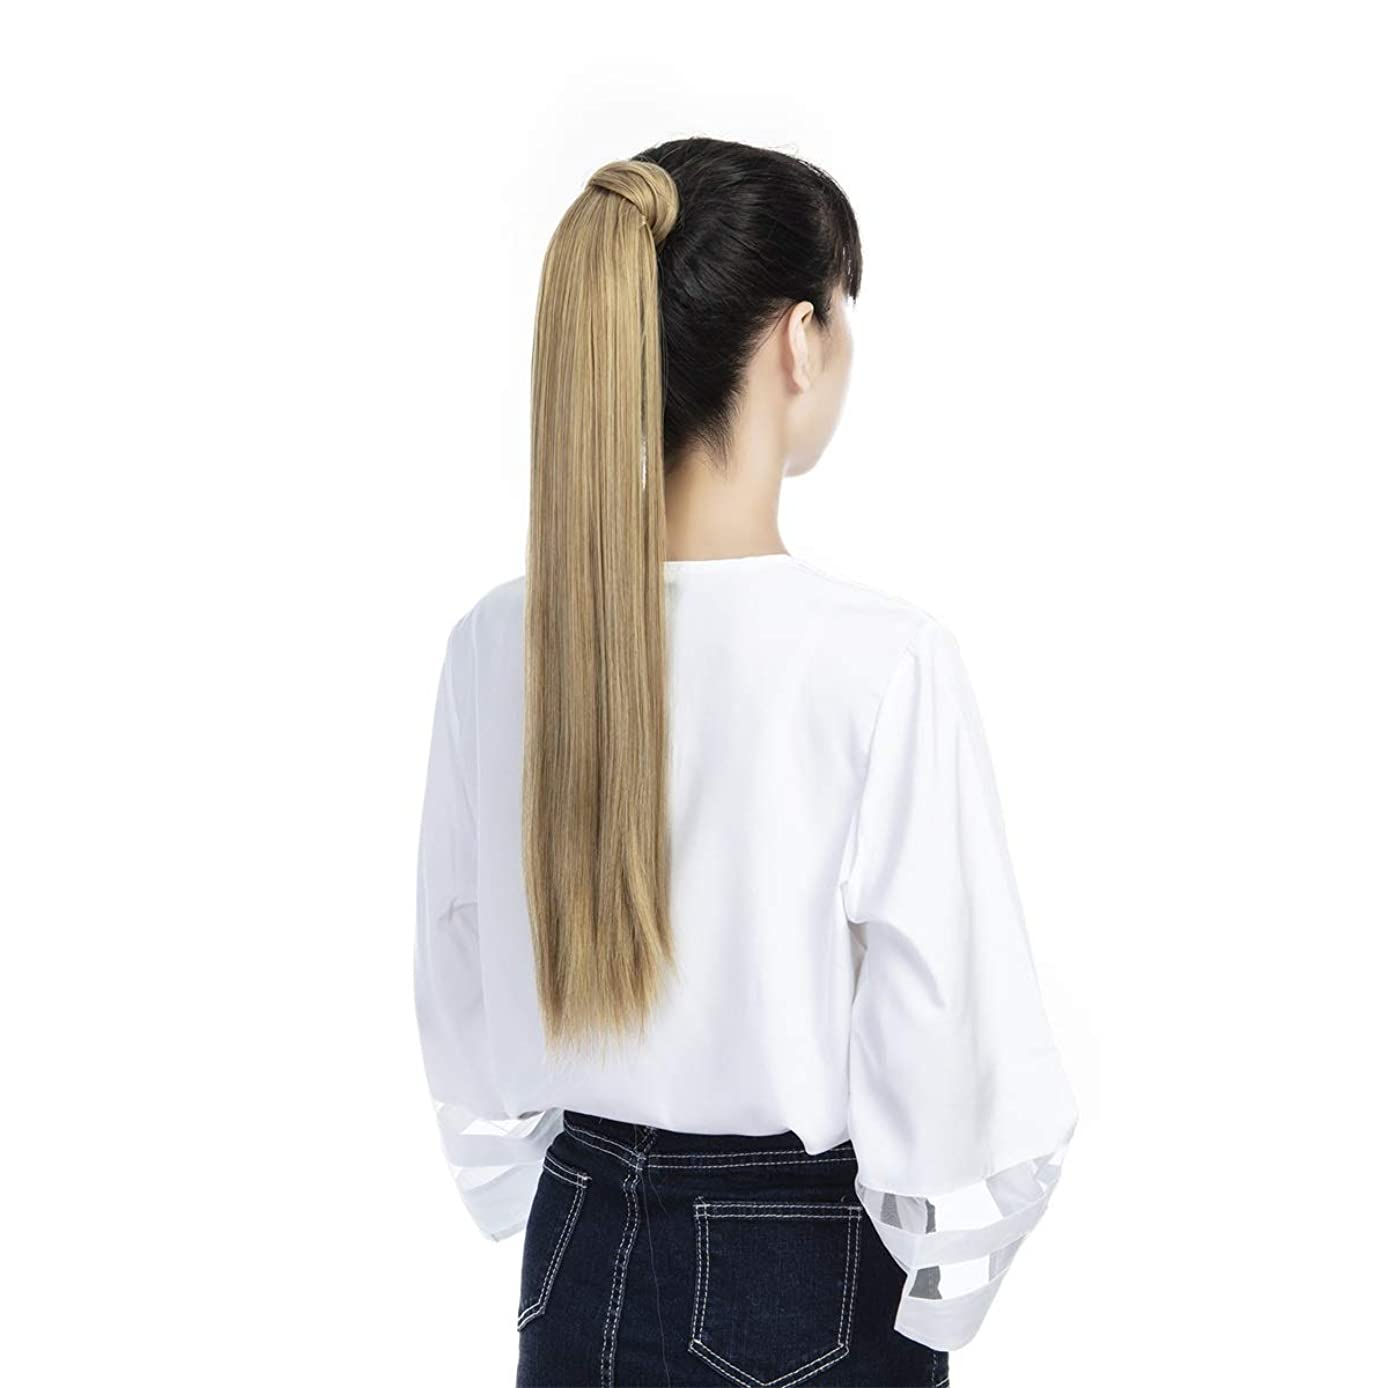 FUT Wrap Around Ponytail One Piece Clip in Curly Pony Tial Hair Extensions 18inch 90g for Girl Lady Women Dark Black